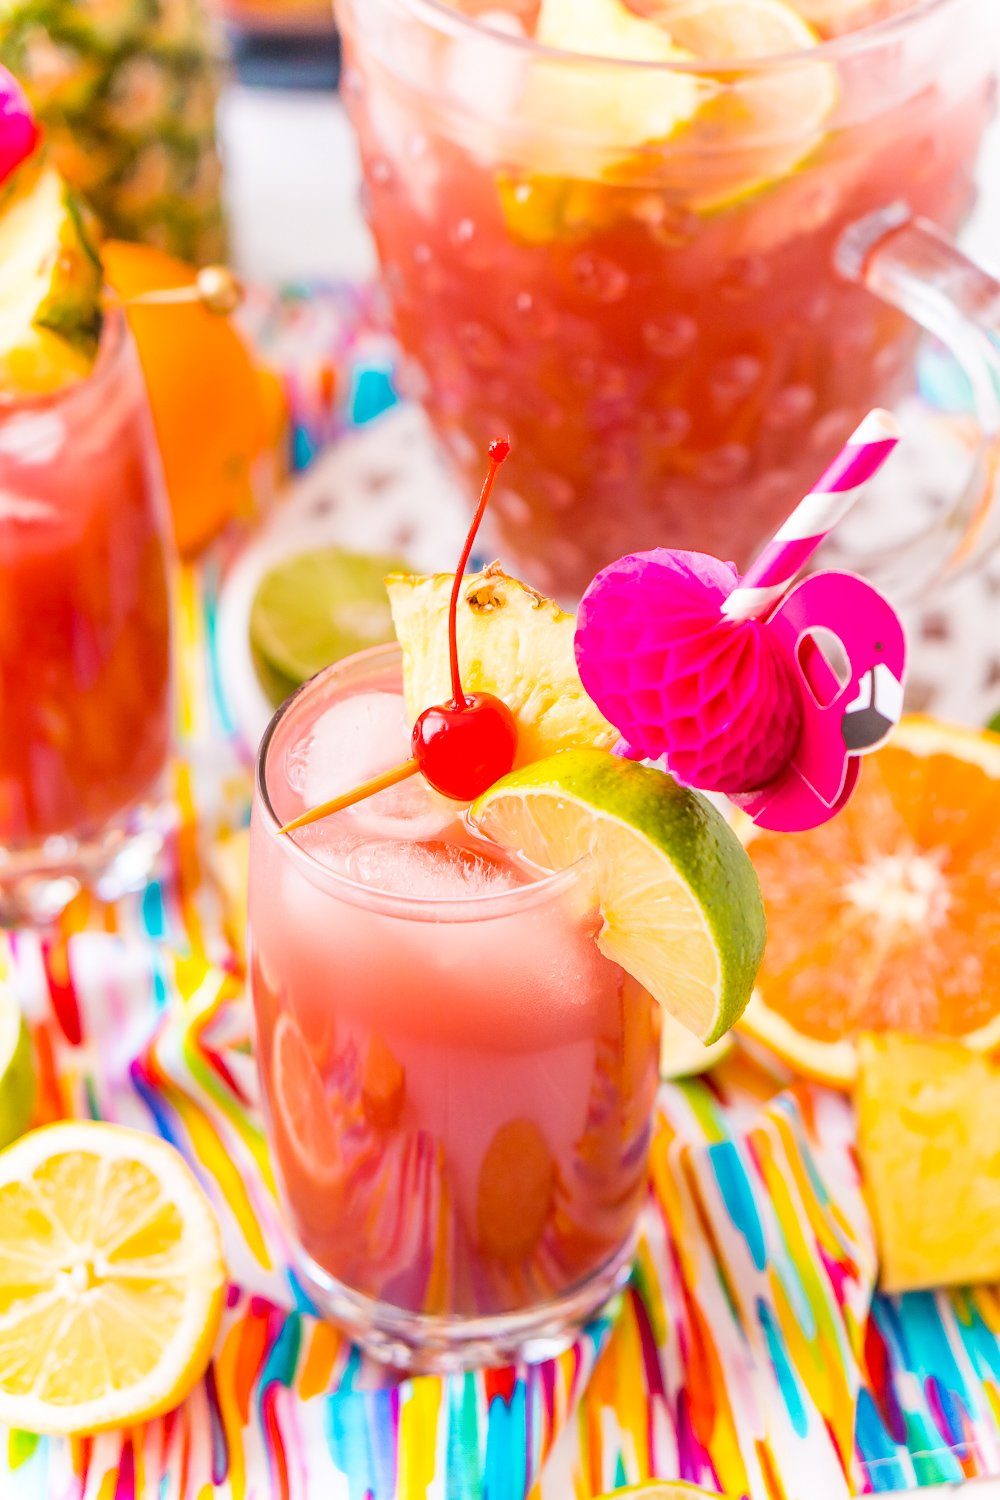 Glass of alcoholic punch garnished with cherry, lime, and pineapple and served with a flamingo straw. Fresh citrus slices scattered around the glass.